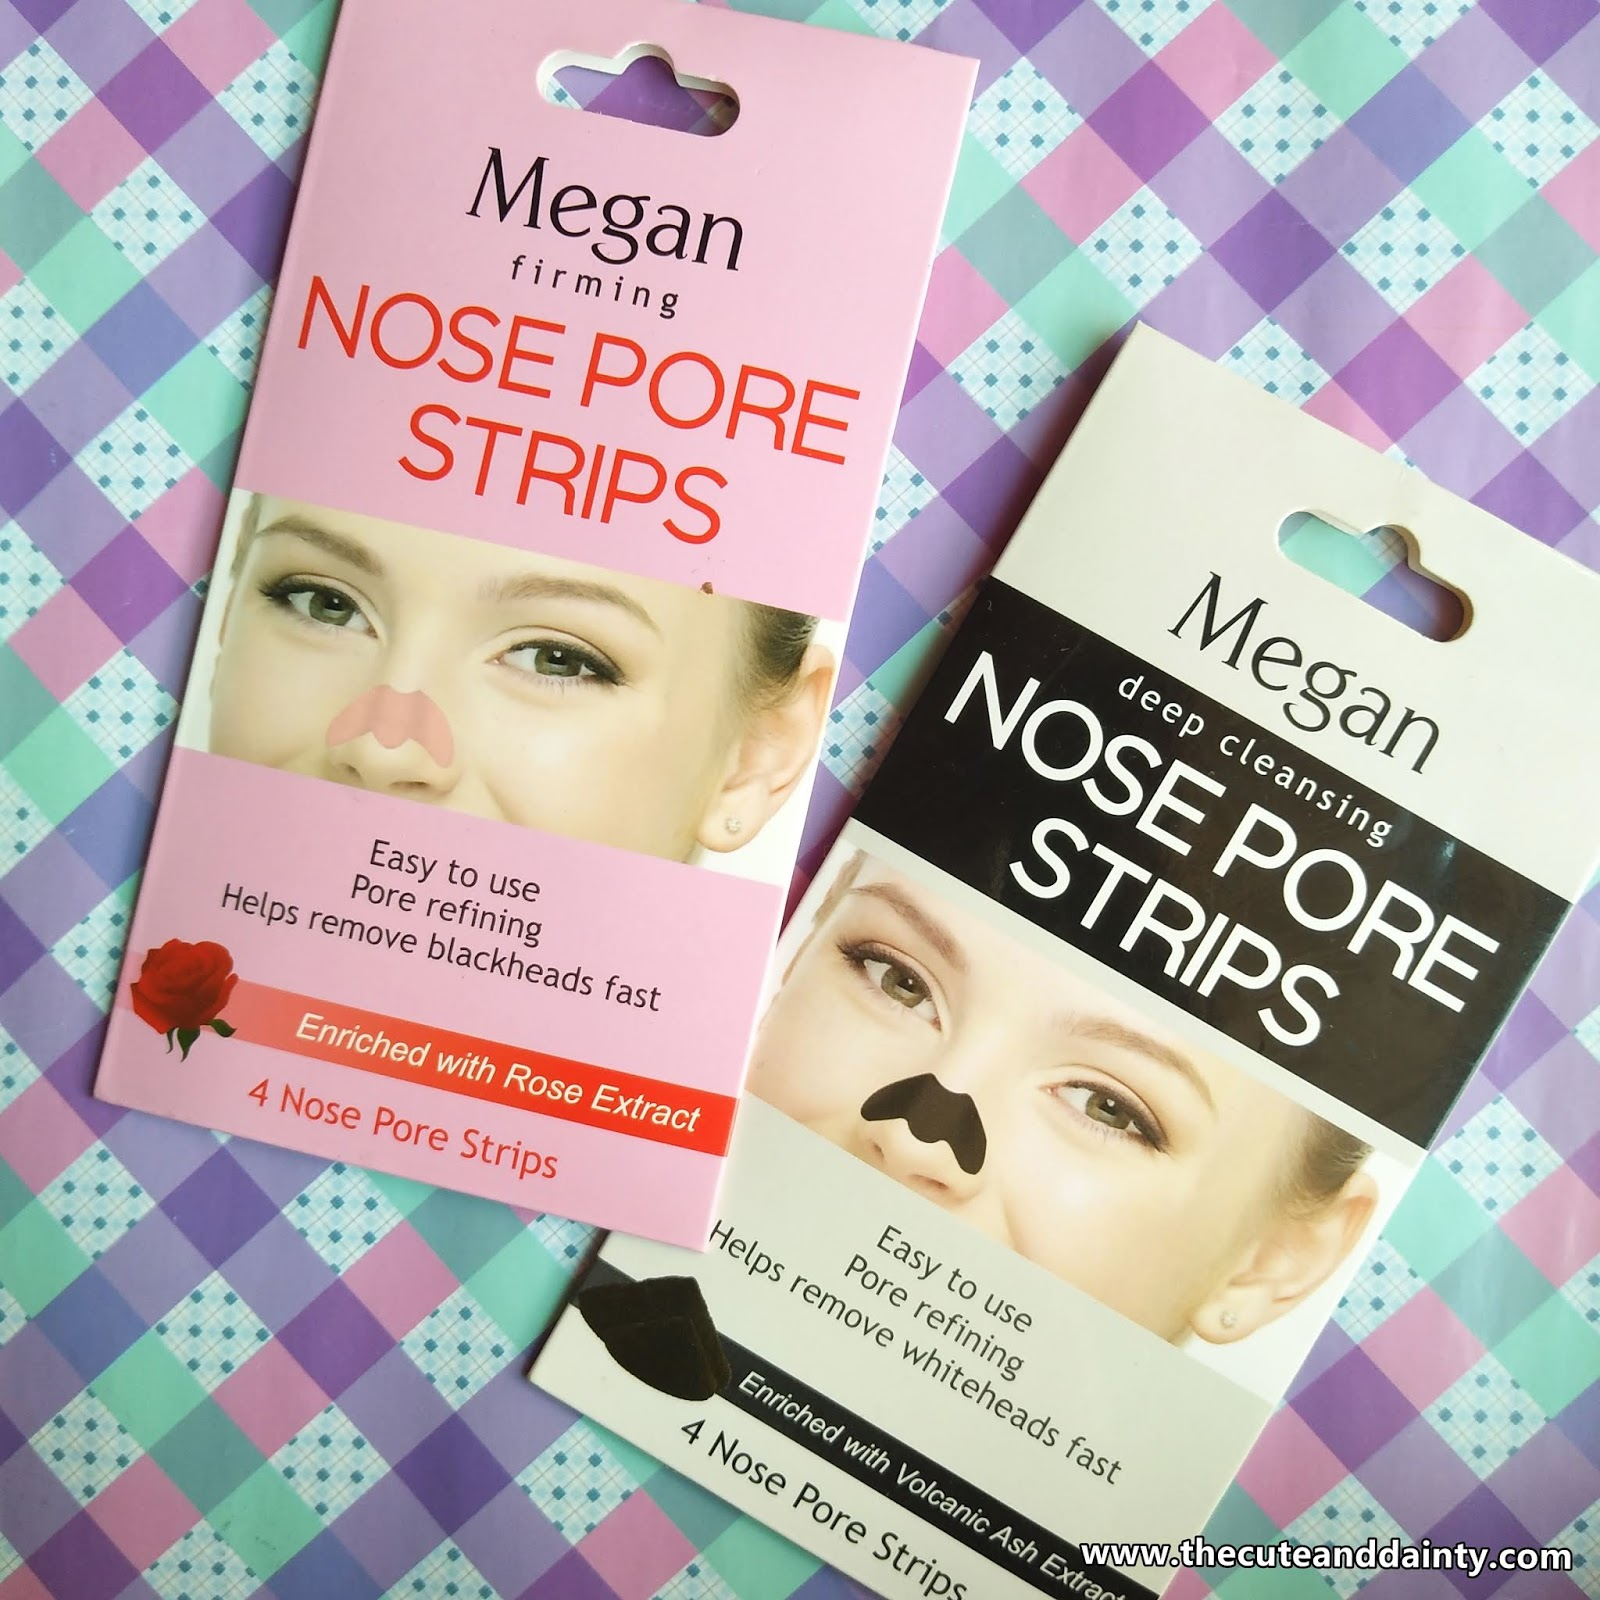 Review: Megan Nose Pore Strips (Deep Cleaning and Firming